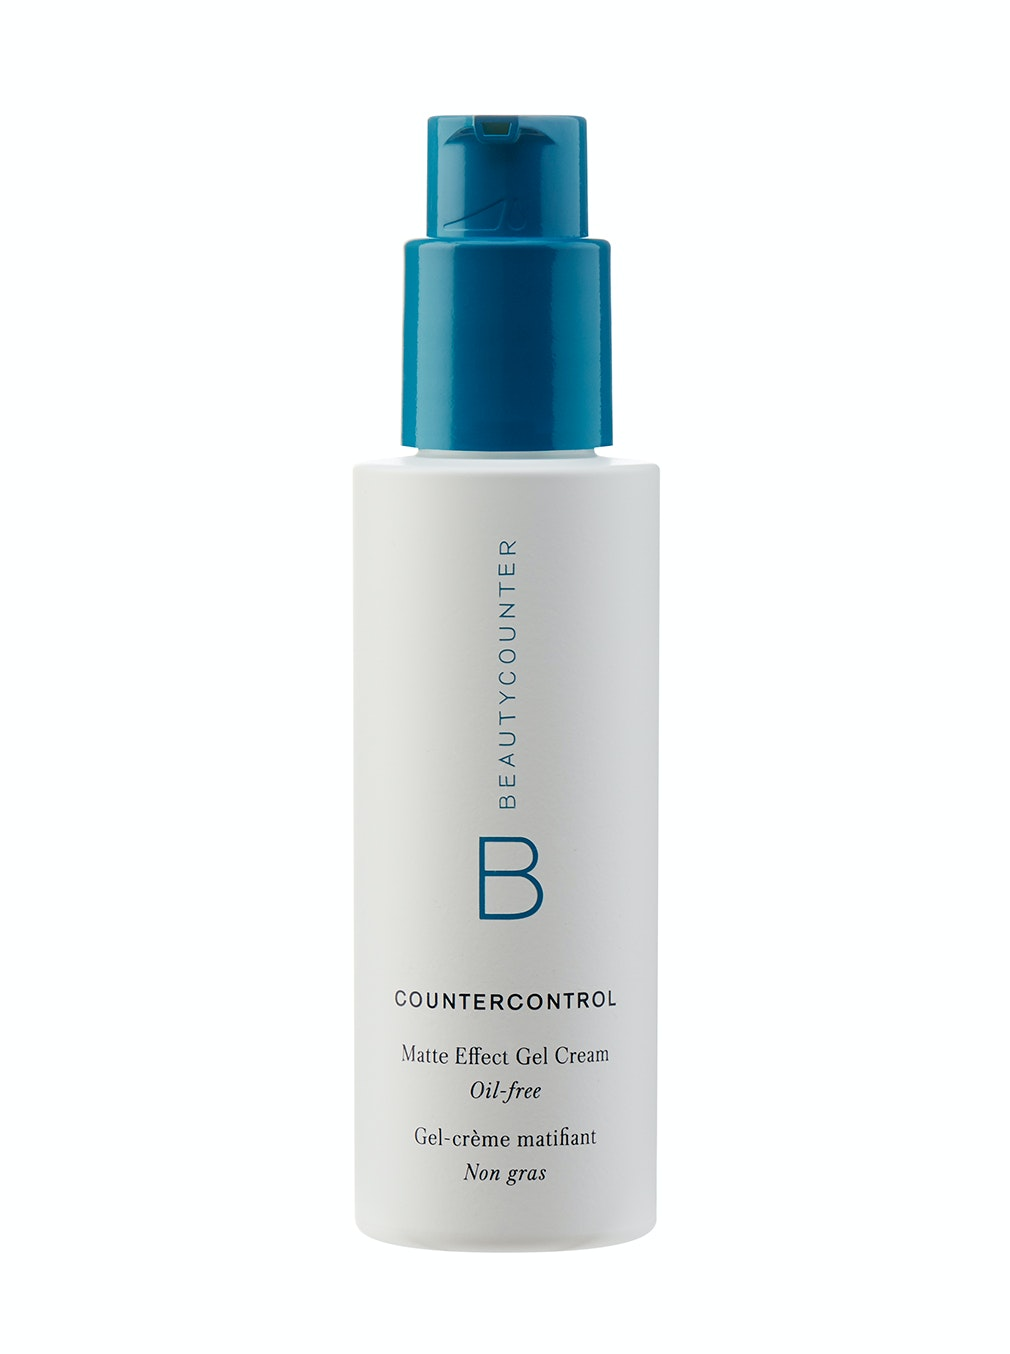 Countercontrol Matte Effect Gel Cream - Oil-free Moisturizer